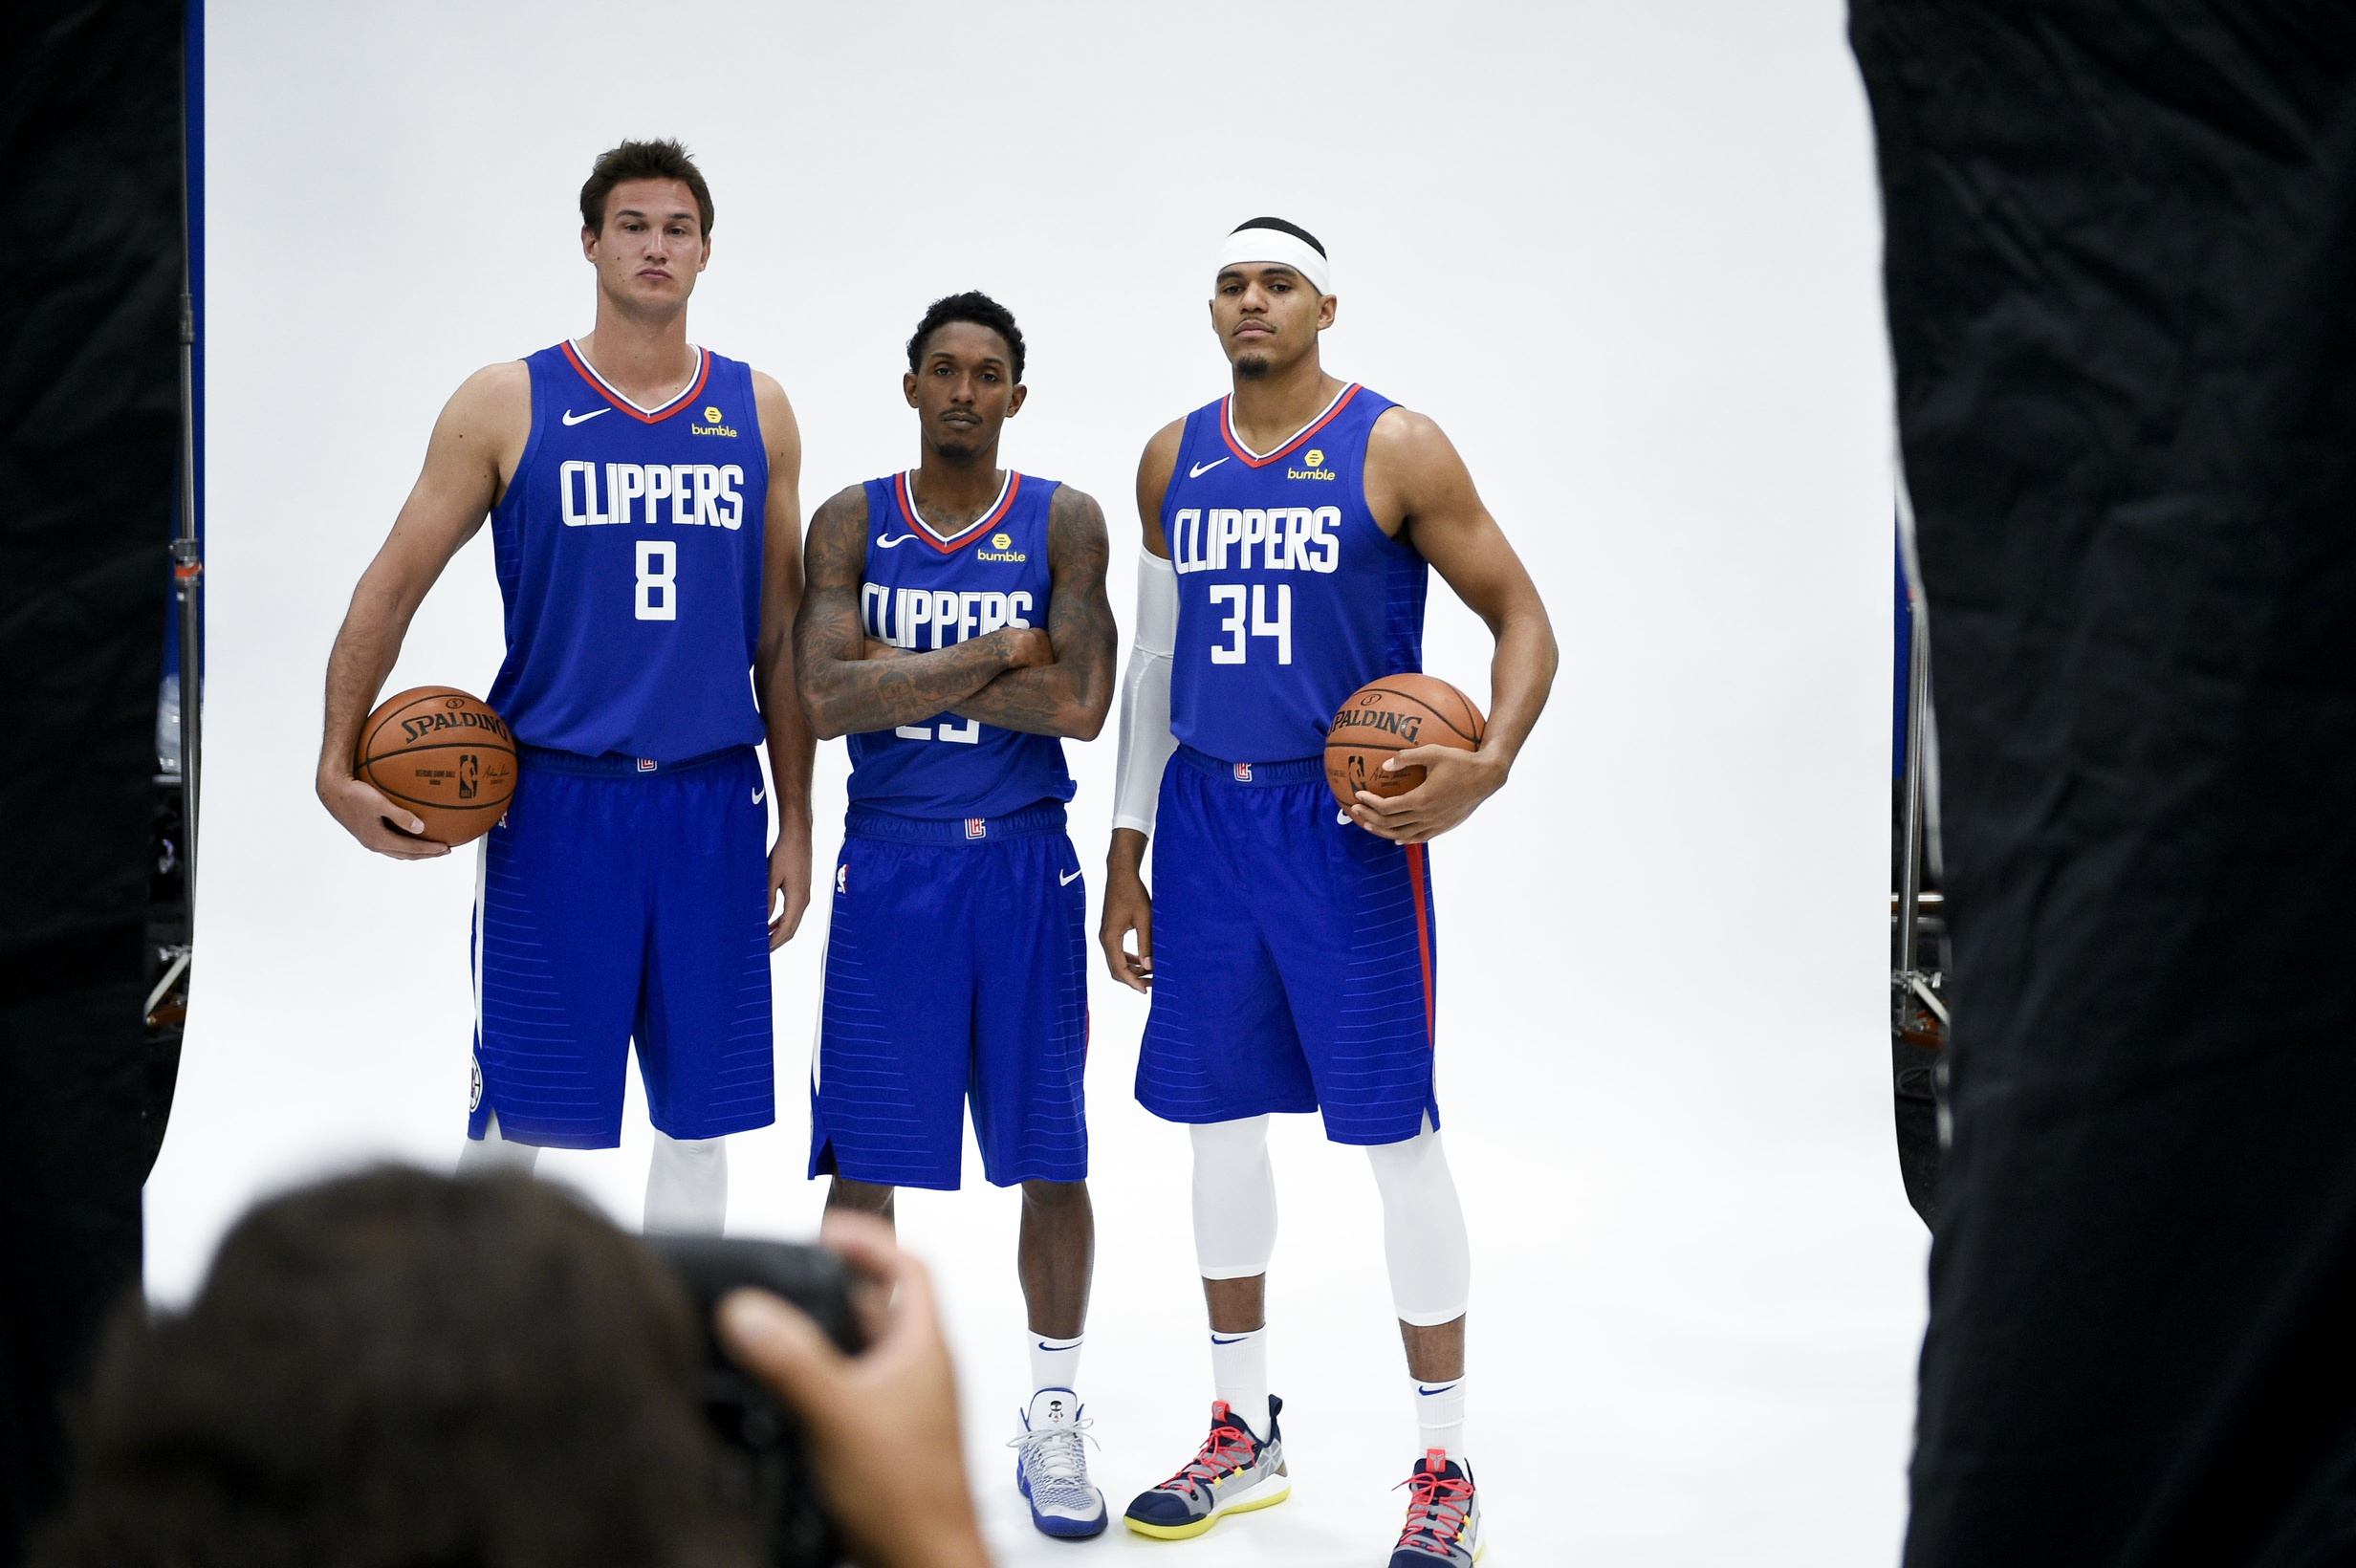 New-Look Clippers Ready to Fight